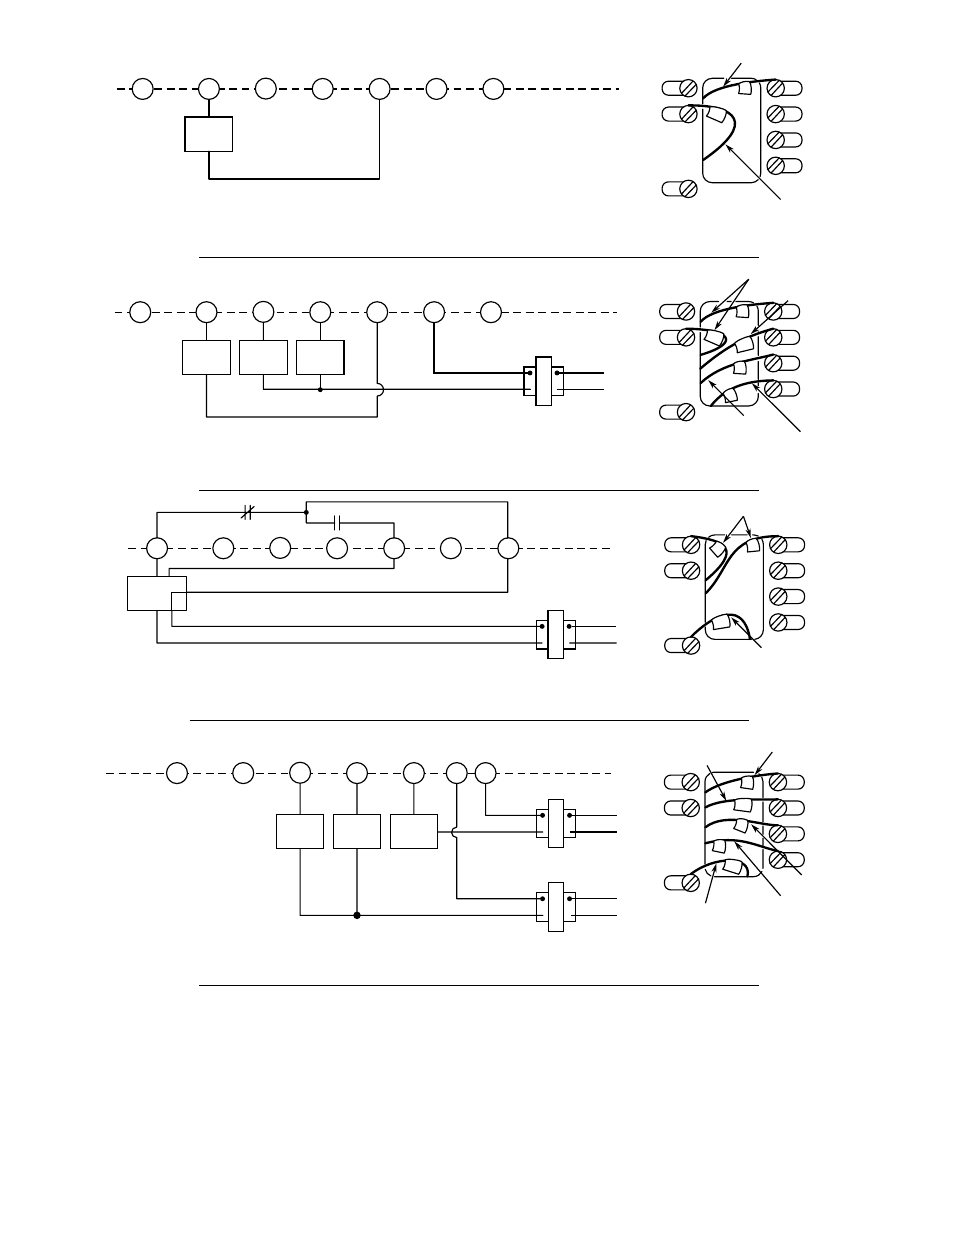 white rodgers 3 wire zone valve wiring diagram pickup grc 6 mv y w rh | 37-5086b user manual page 5 / 8